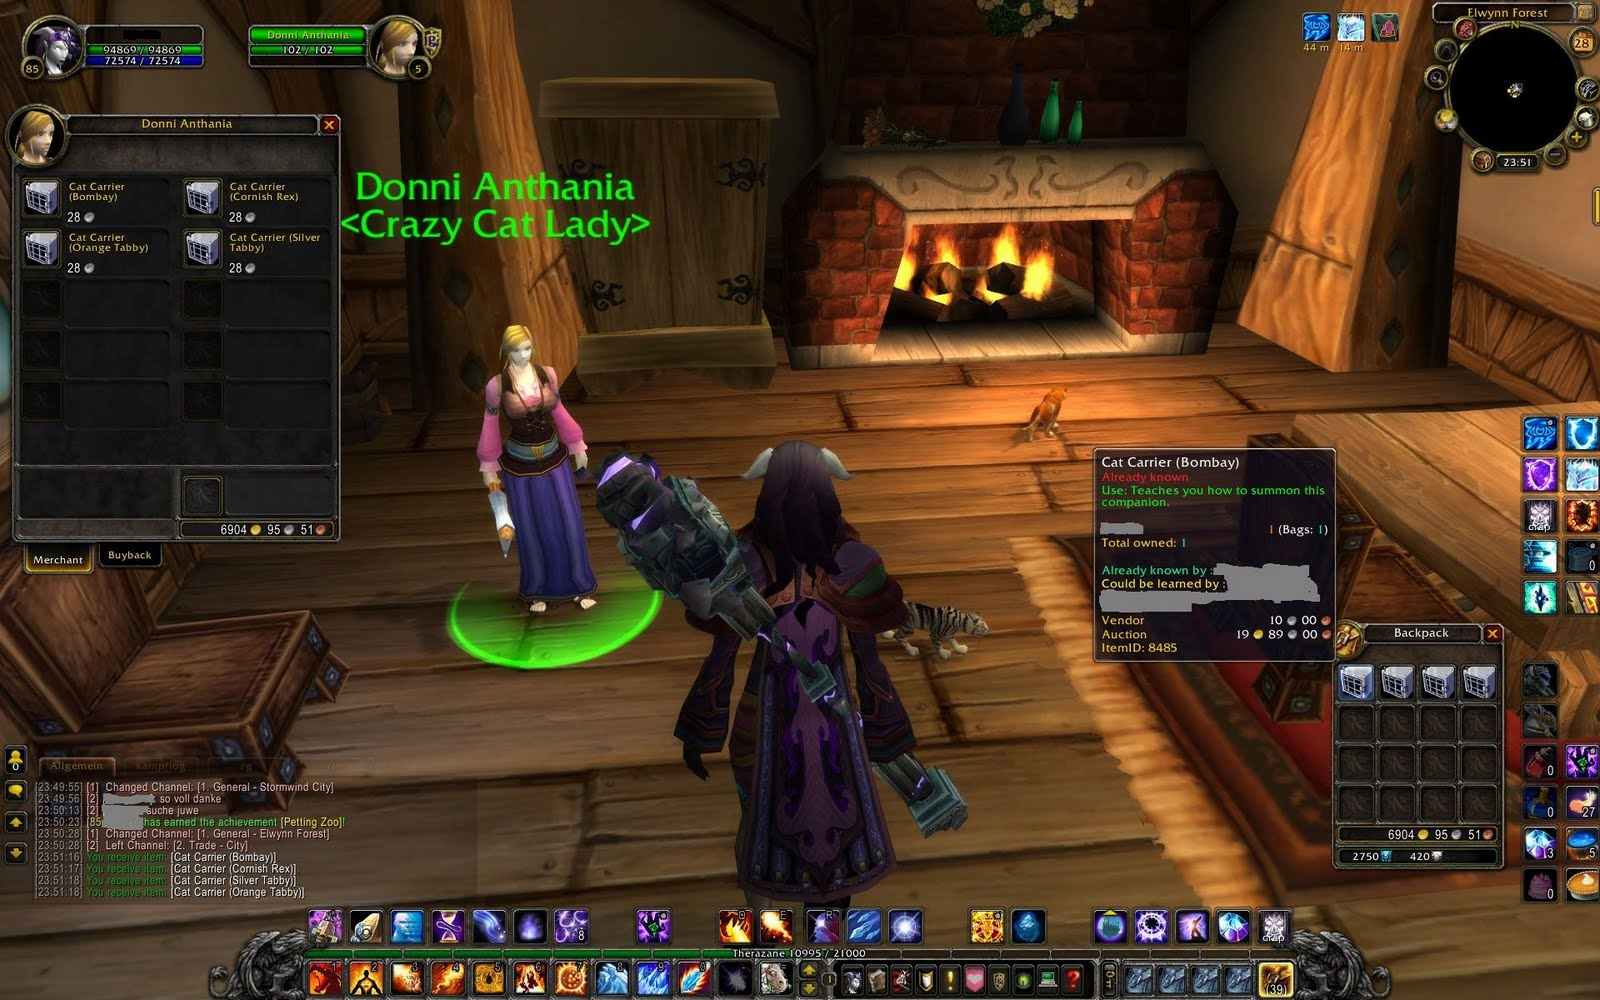 My review: Companion world of warcraft pets